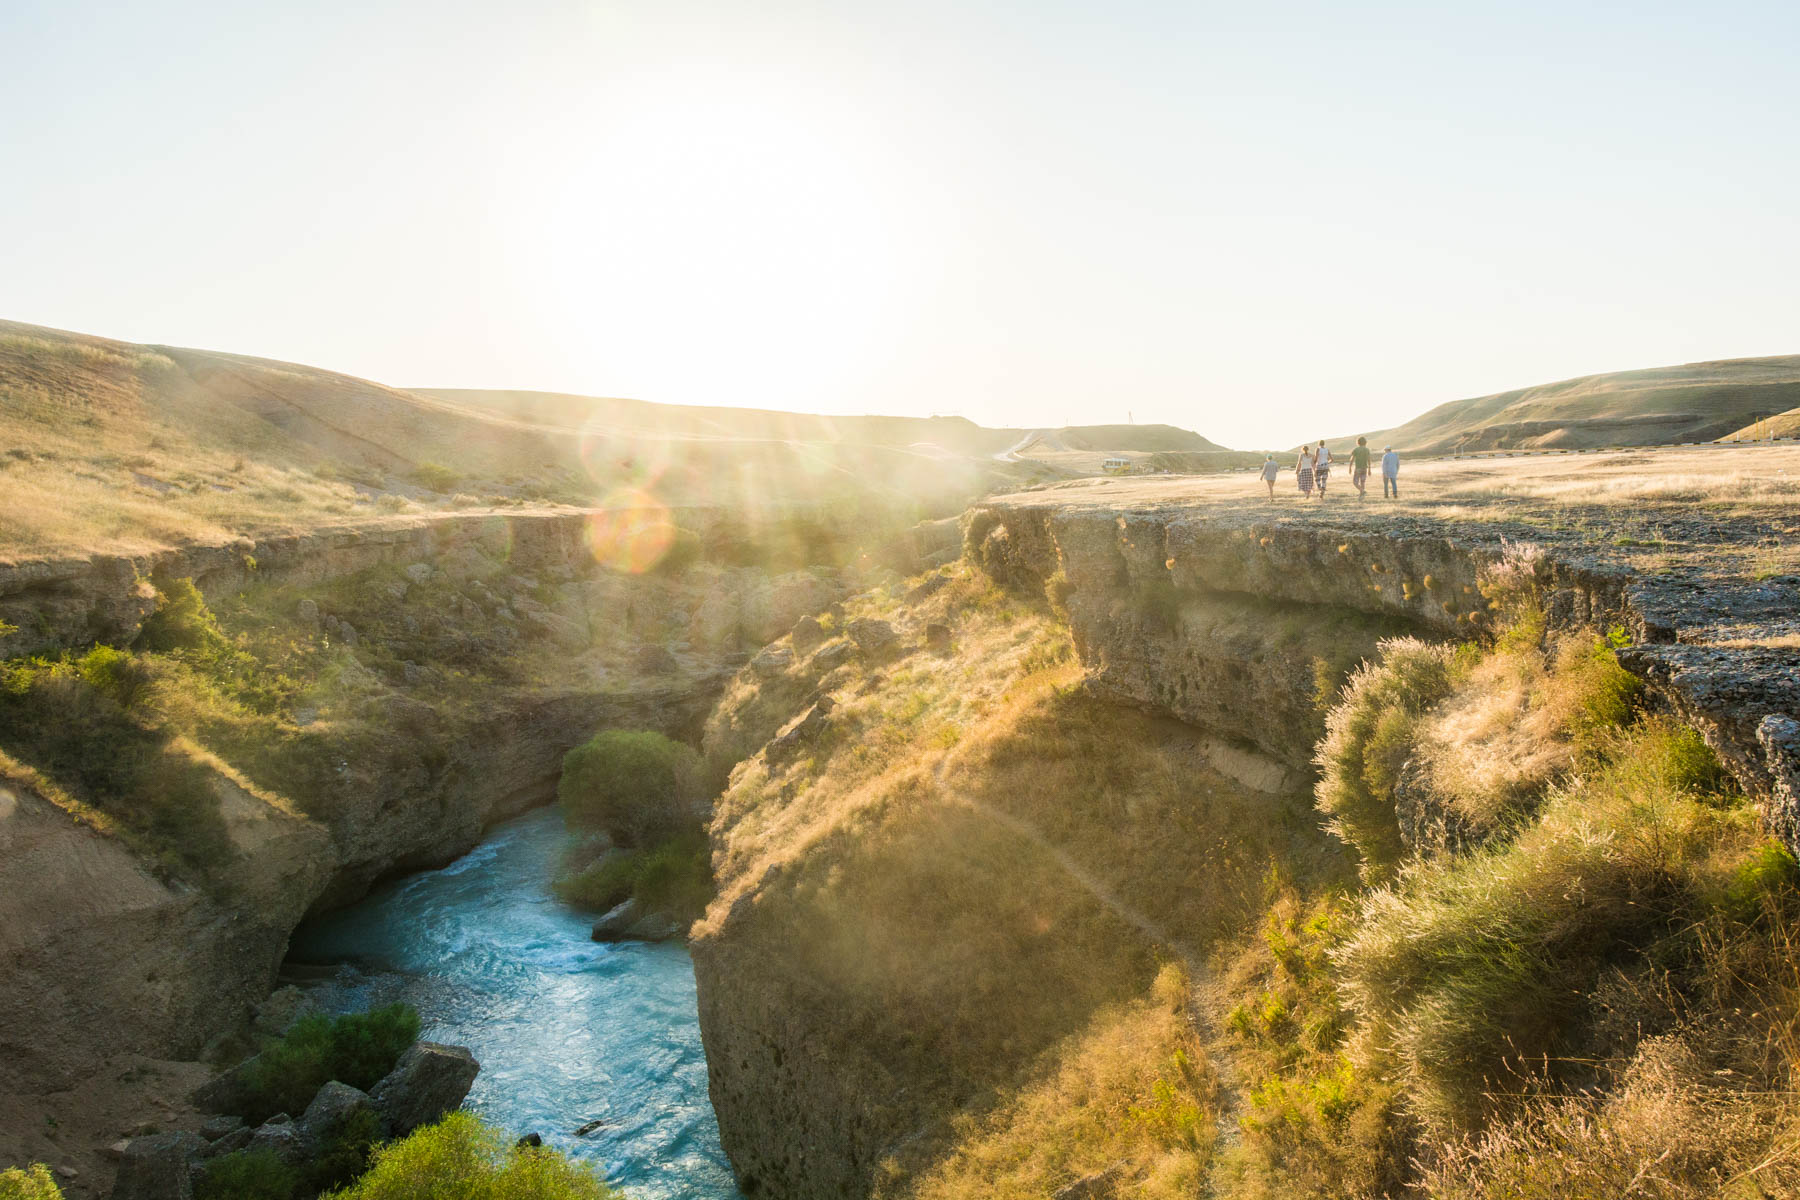 The glacial waters of the Aksu river threading through a canyon at sunset - Lost With Purpose